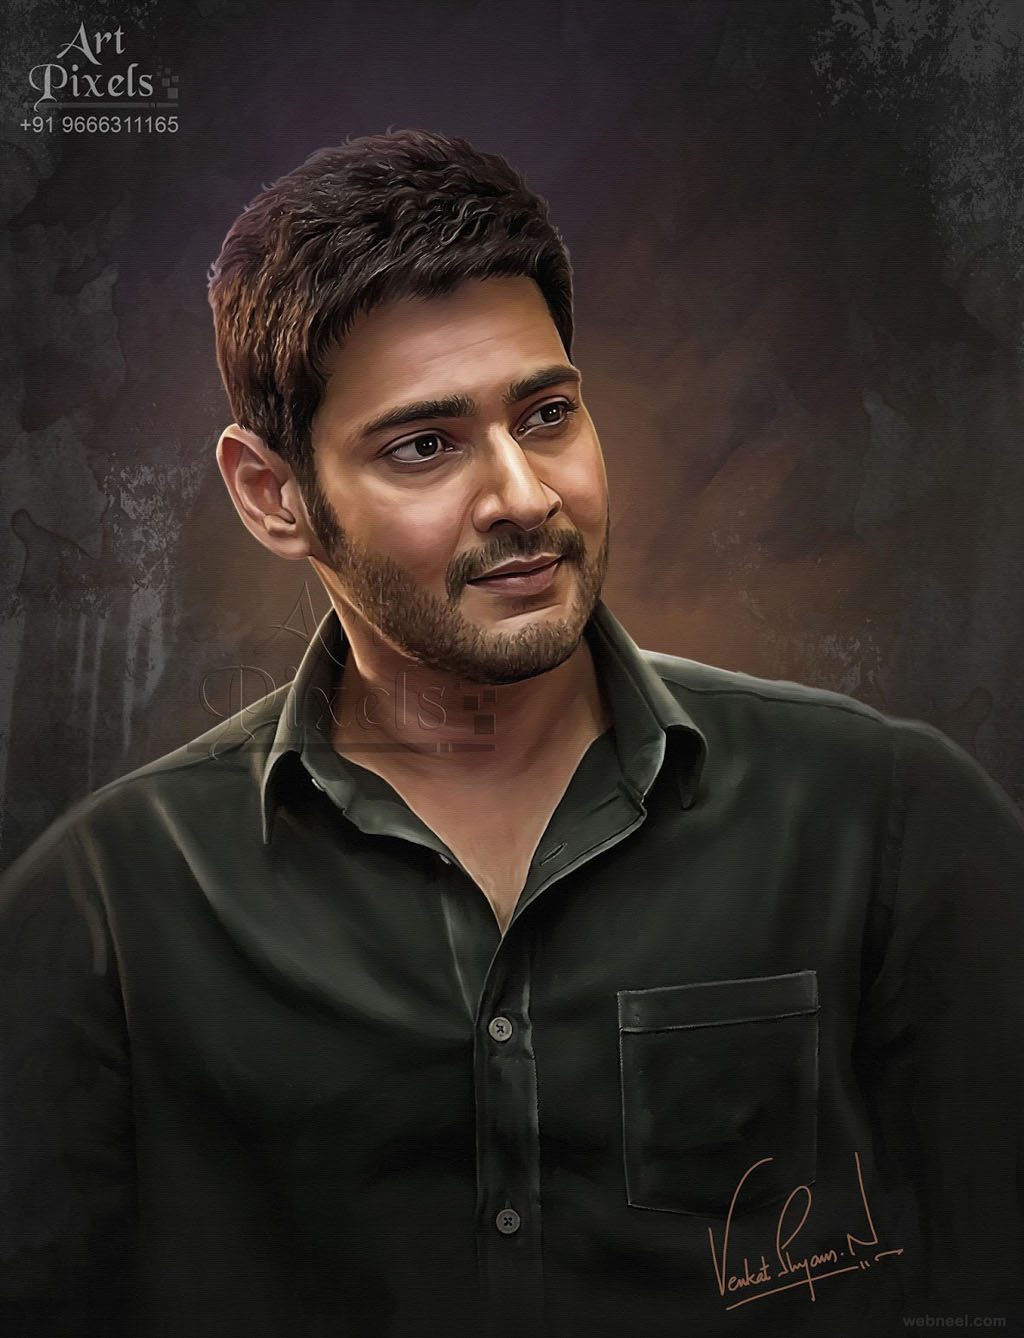 mahesh abu actor digital painting by venkat shyam